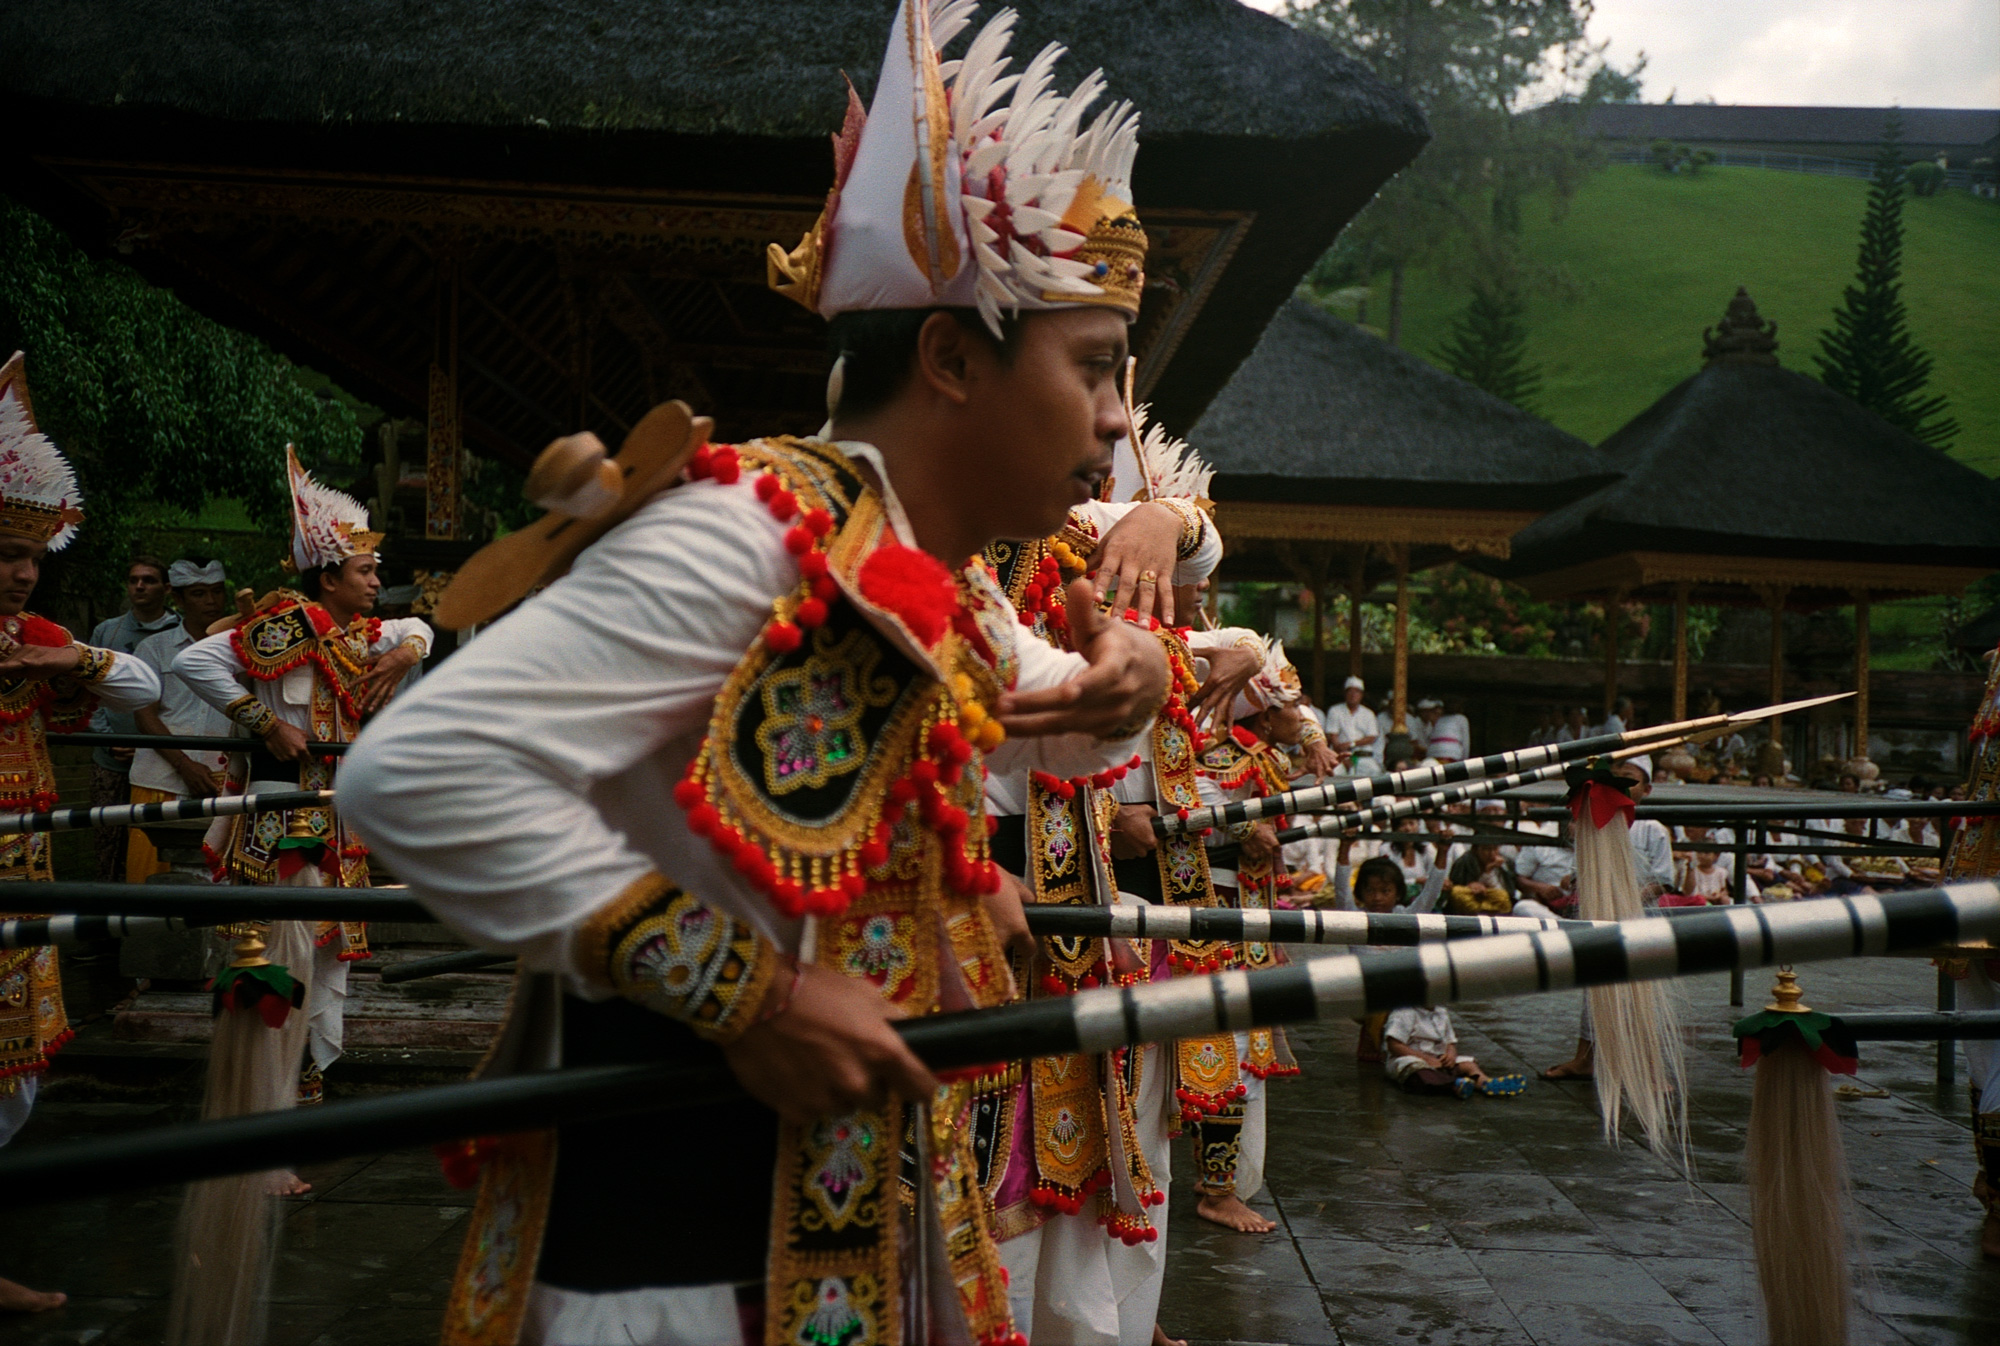 Tirta Empul Temple Performers, Eastern Travels, Ubud, Photography By Ioannis Koussertari